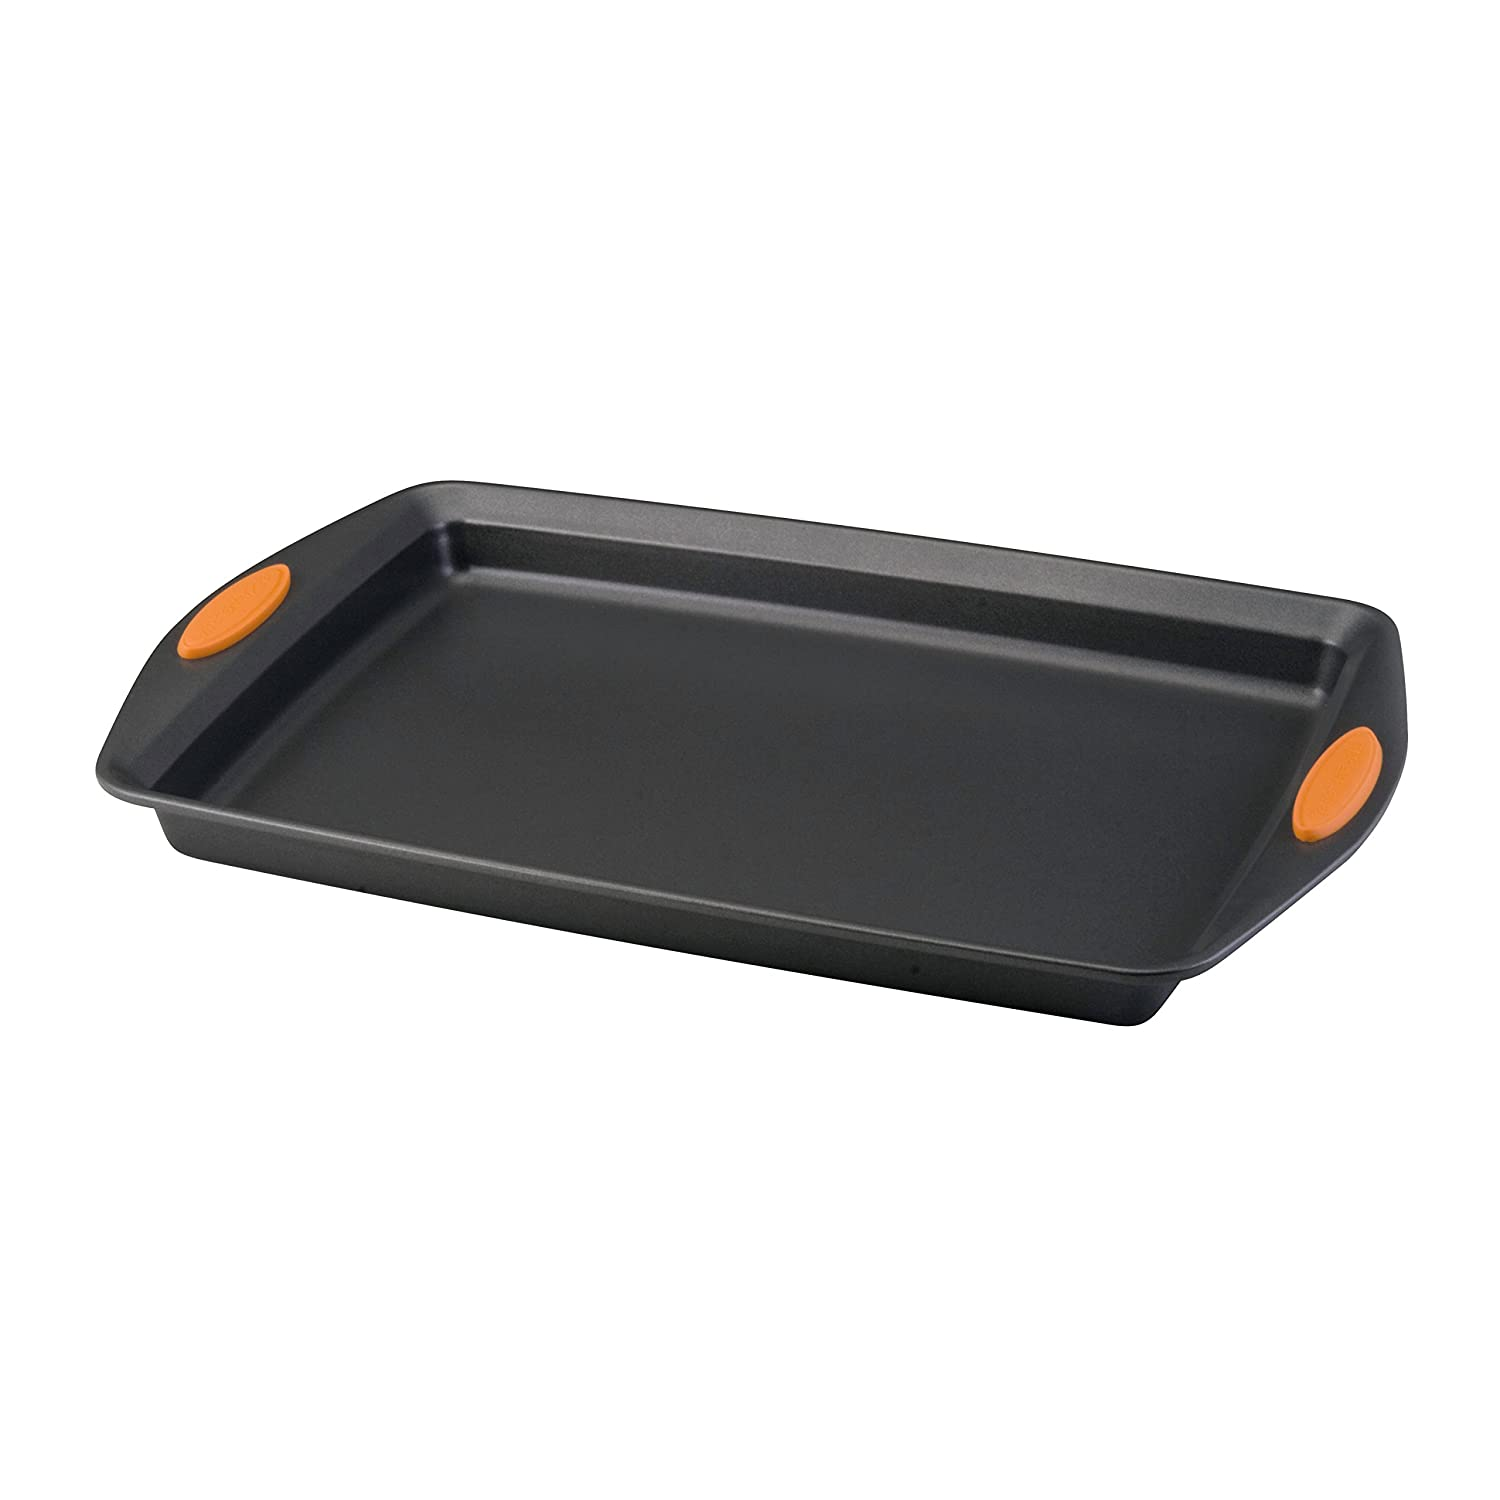 Rachael Ray Yum-o! Nonstick Bakeware 10-Inch by 15-Inch Oven Lovin' Crispy Sheet Cookie Pan, Gray with Orange Handles